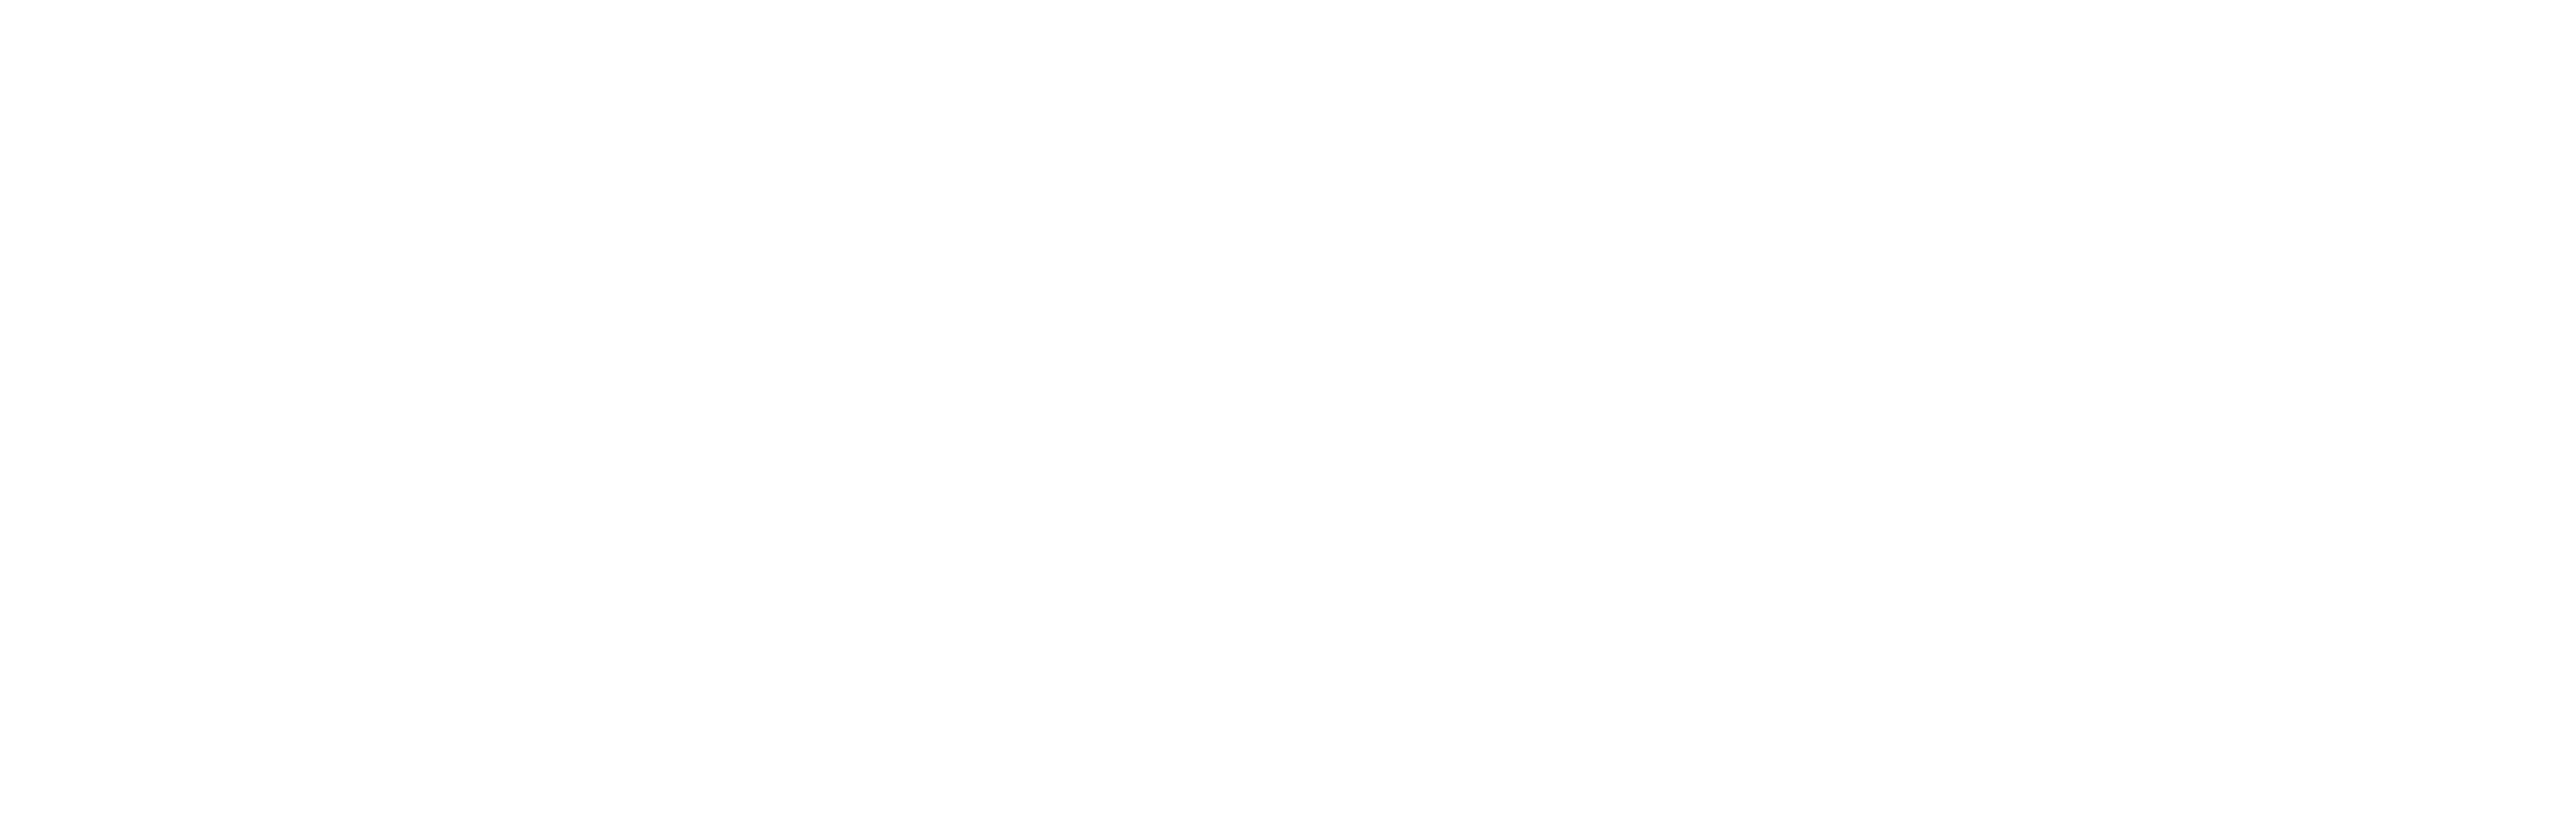 City of Brownwood Logo - Horizontal White